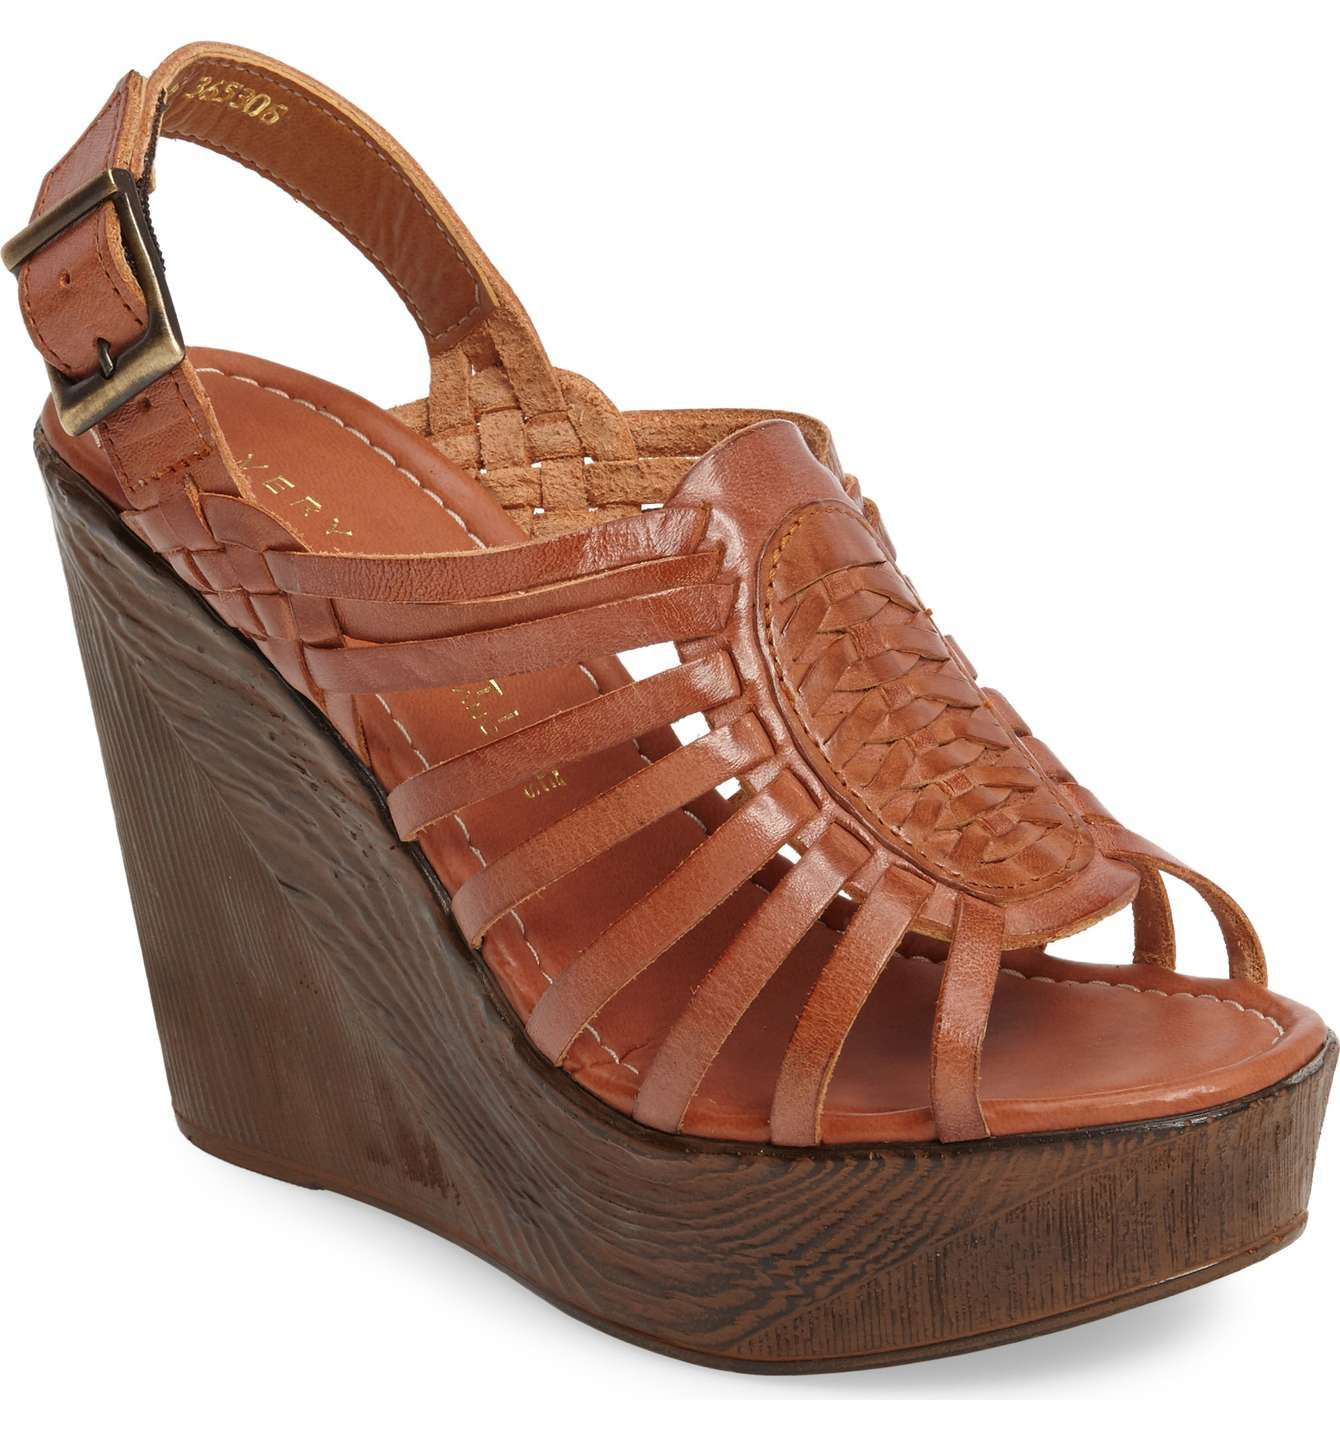 2635692b42d Main Image - Very Volatile Prolific Wedge Sandal (Women)